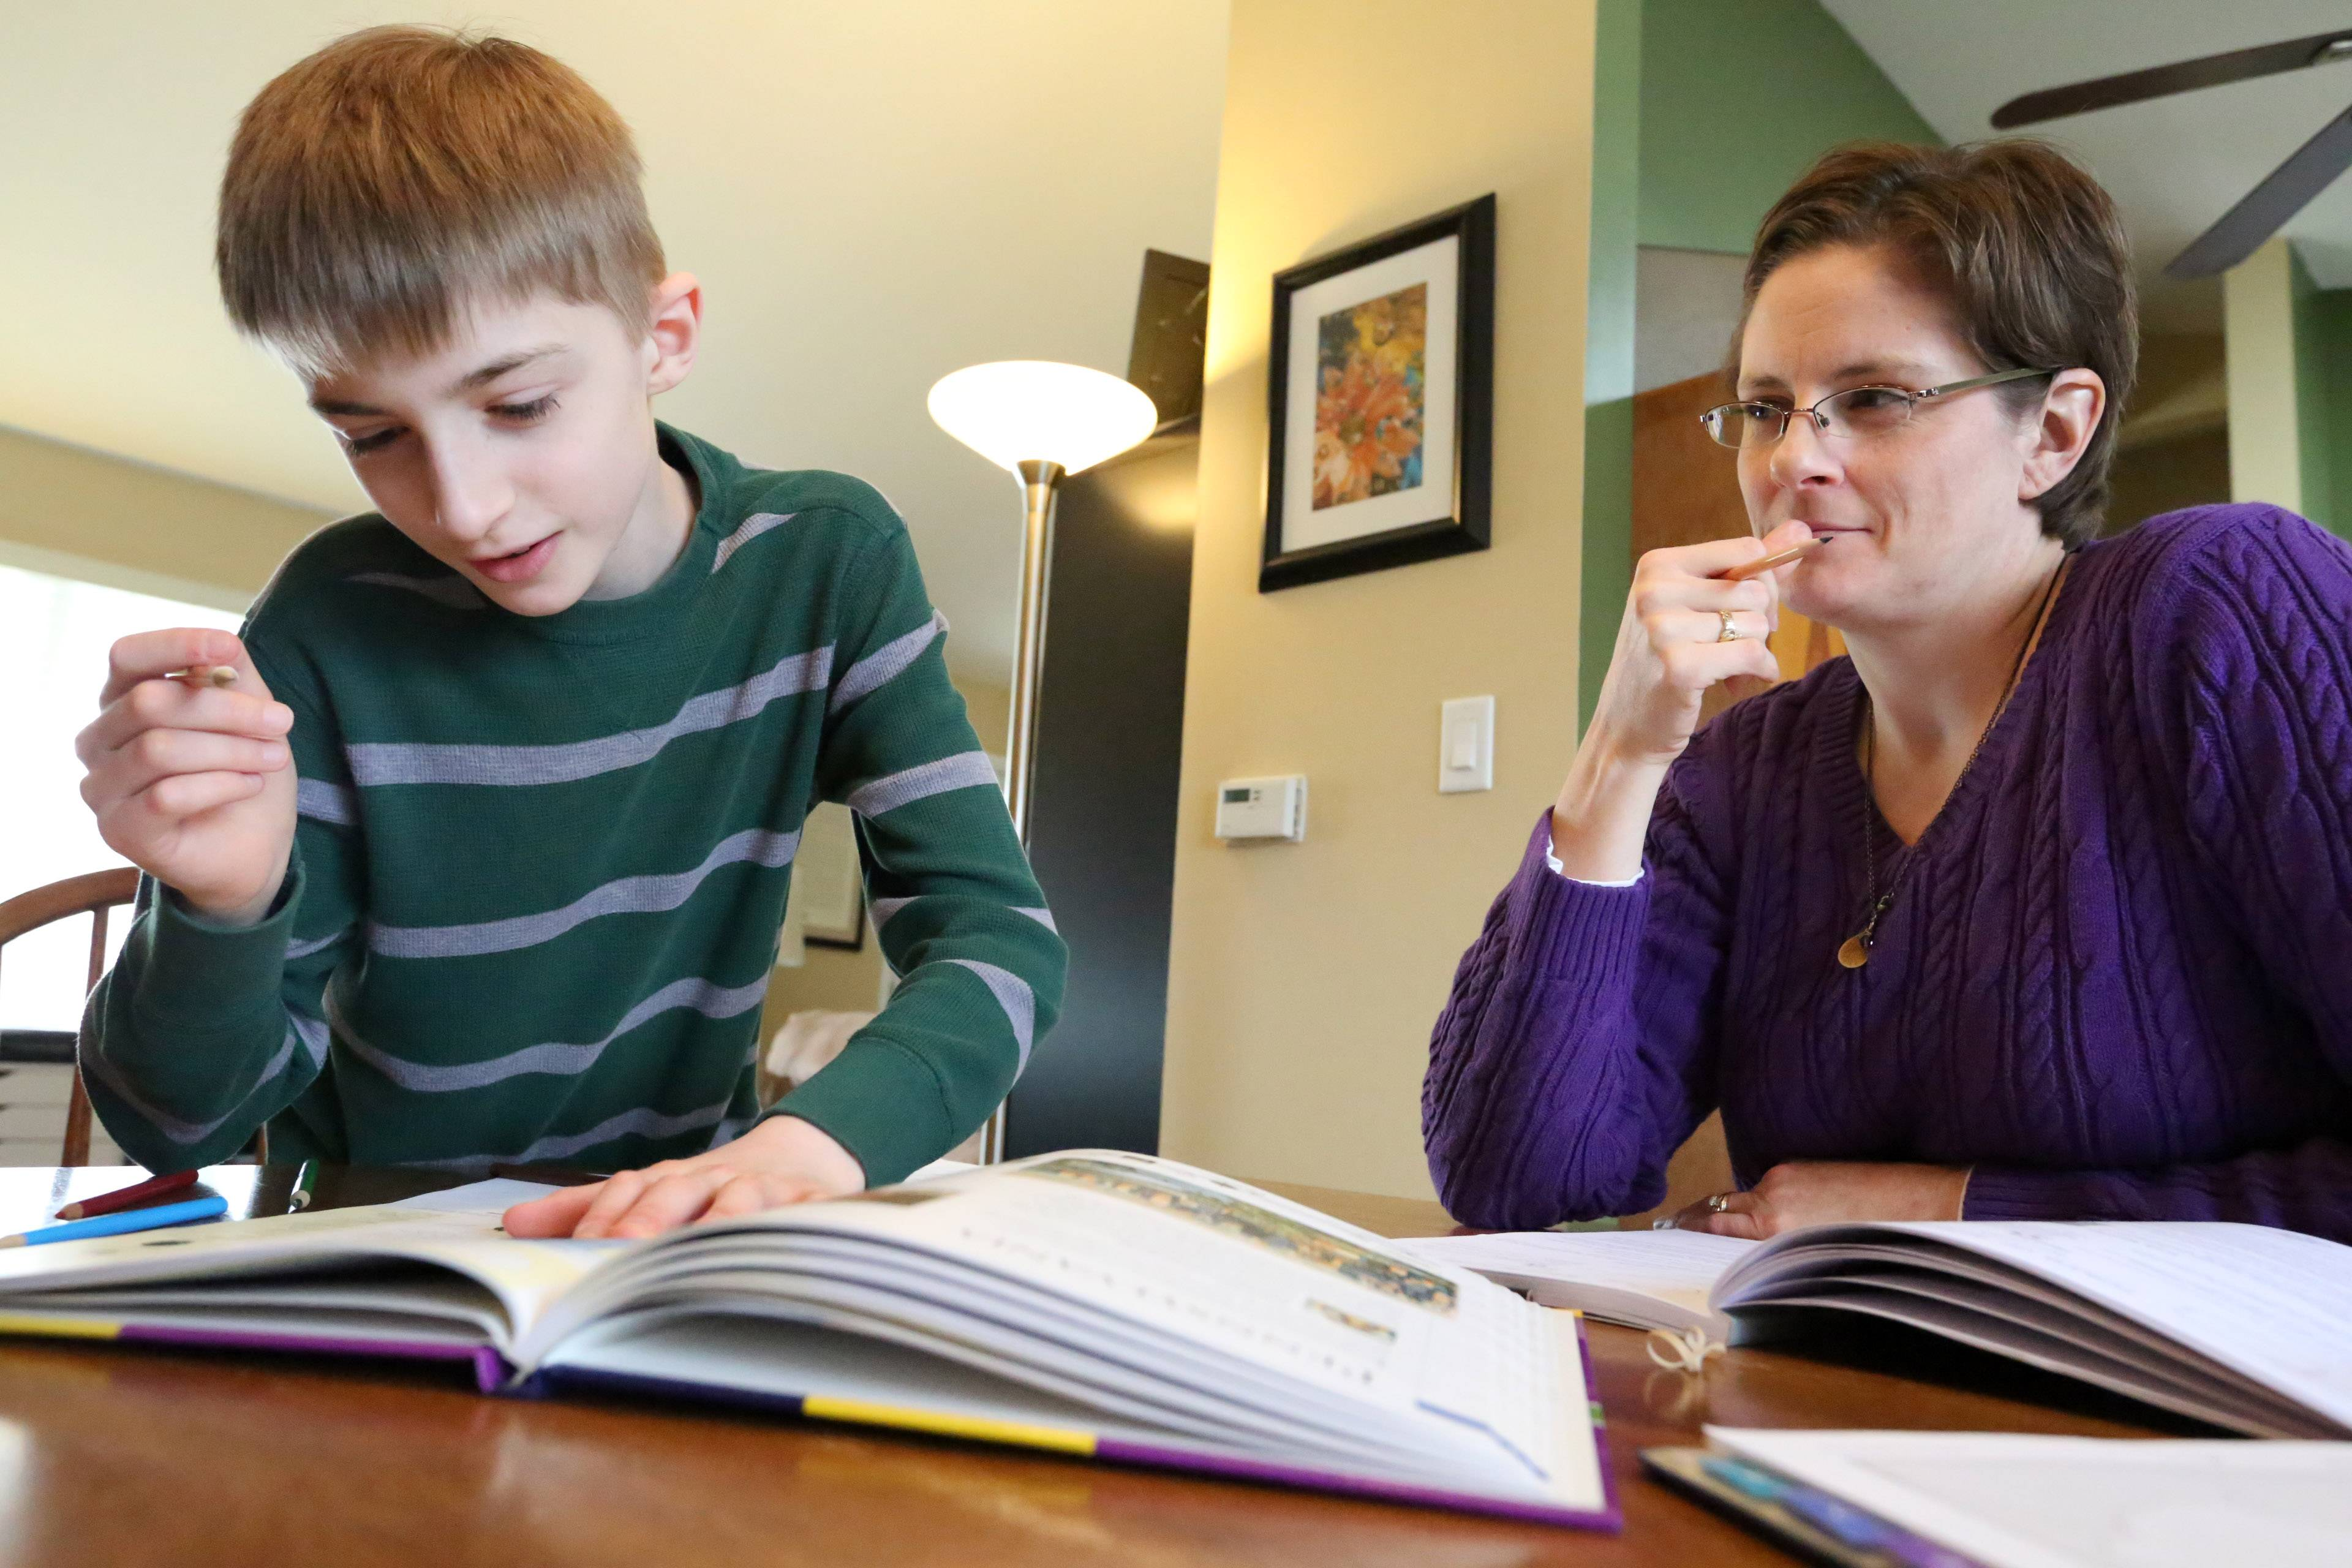 Andy Merrill studies geography with his mother, Jenny, during a home-school session in Libertyville.